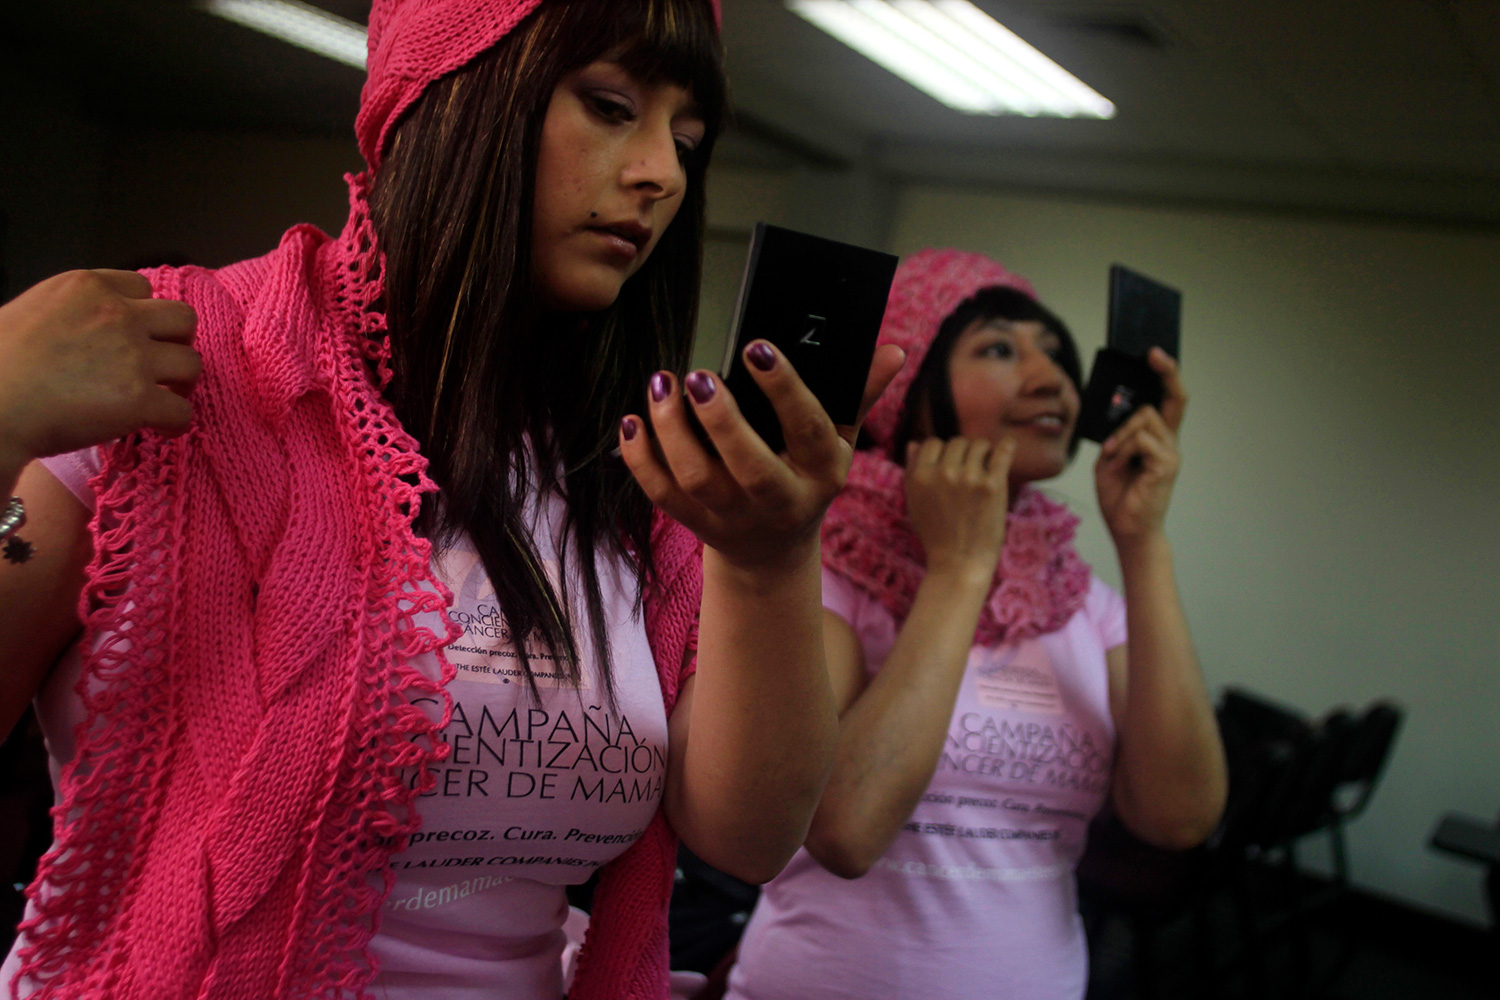 The photo shows two women in pink outfits looking into small mirrors and applying makeup.